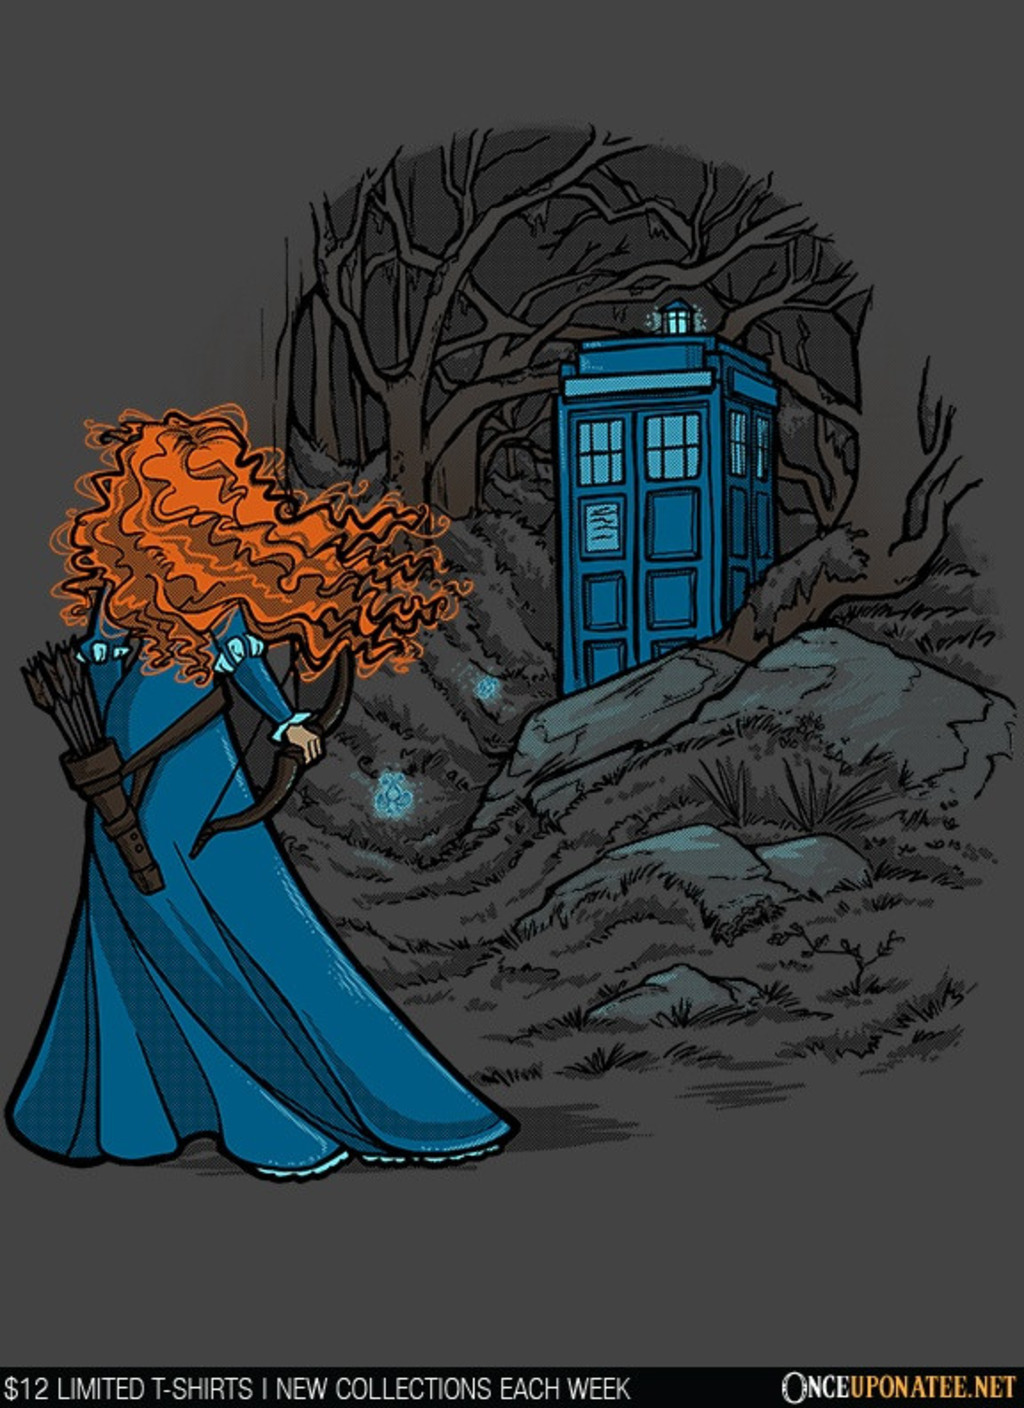 Once Upon a Tee: Follow Your Fate